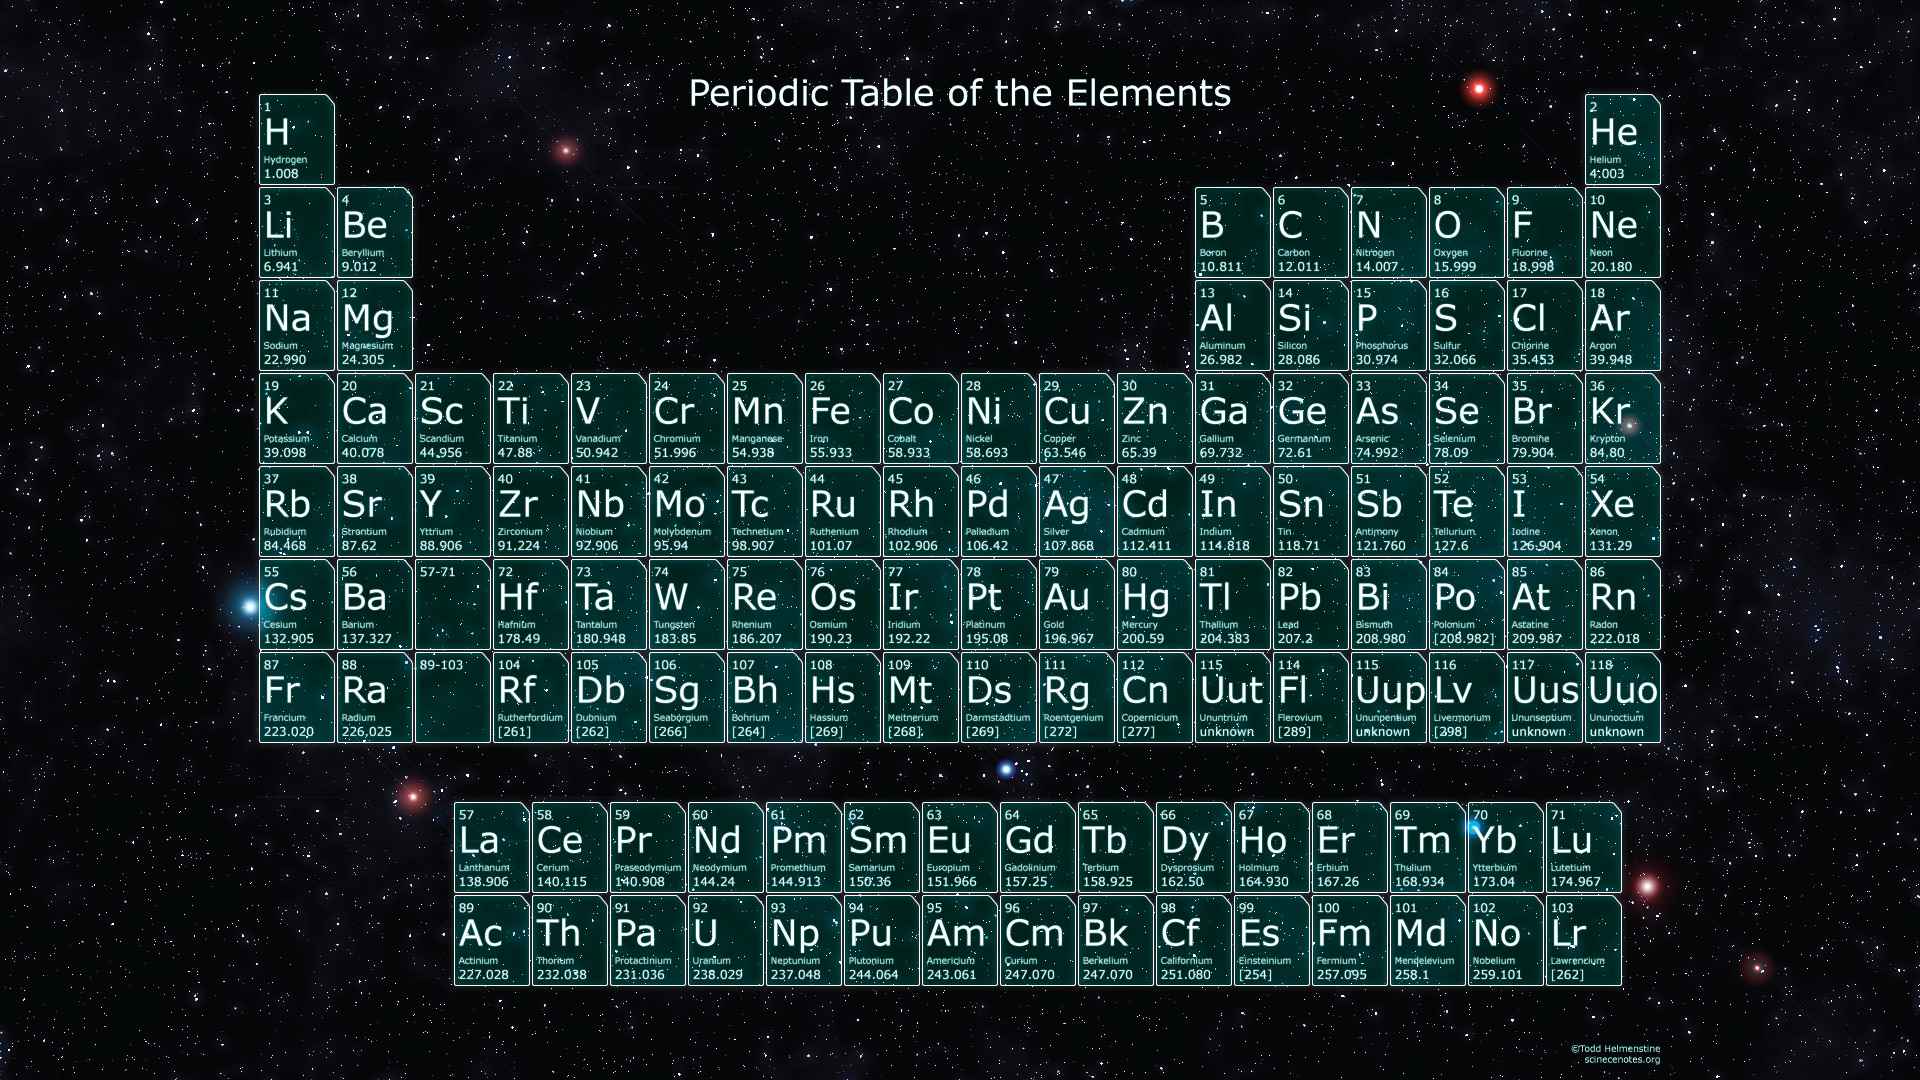 1920x1080 periodic table of elements wallpaper cool periodic table wallpaper troqhpia